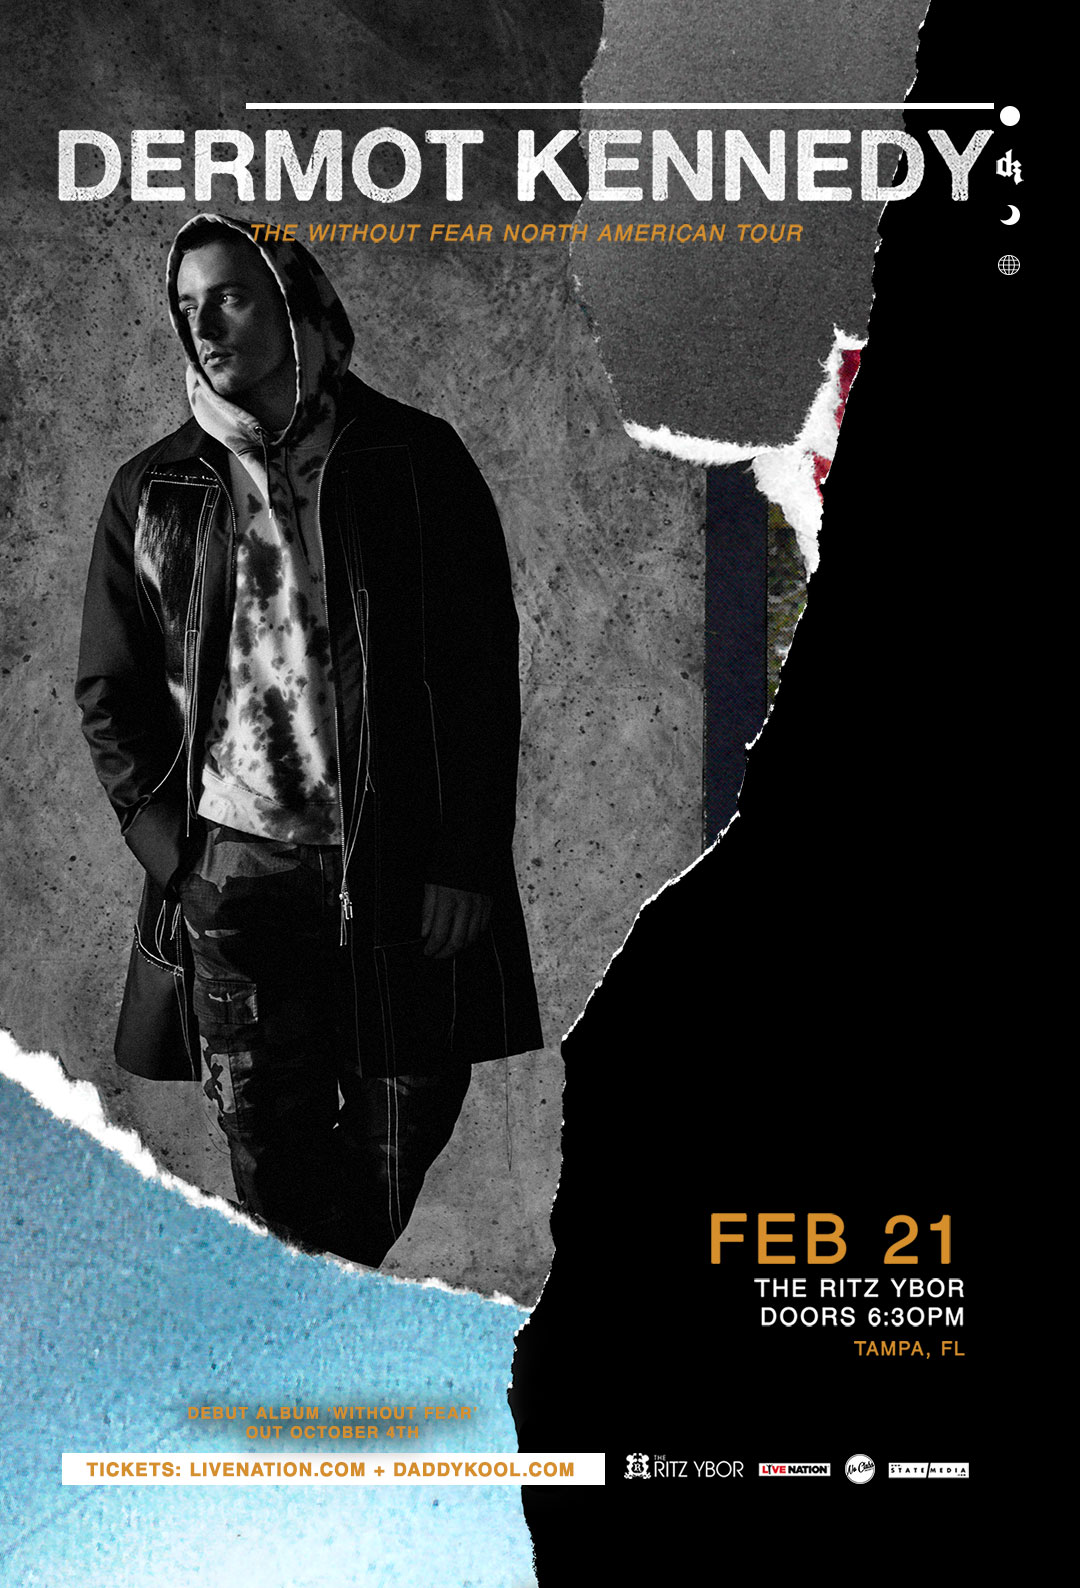 Dermot Kennedy: Without Fear Tour at The RITZ Ybor – 2/21/2020